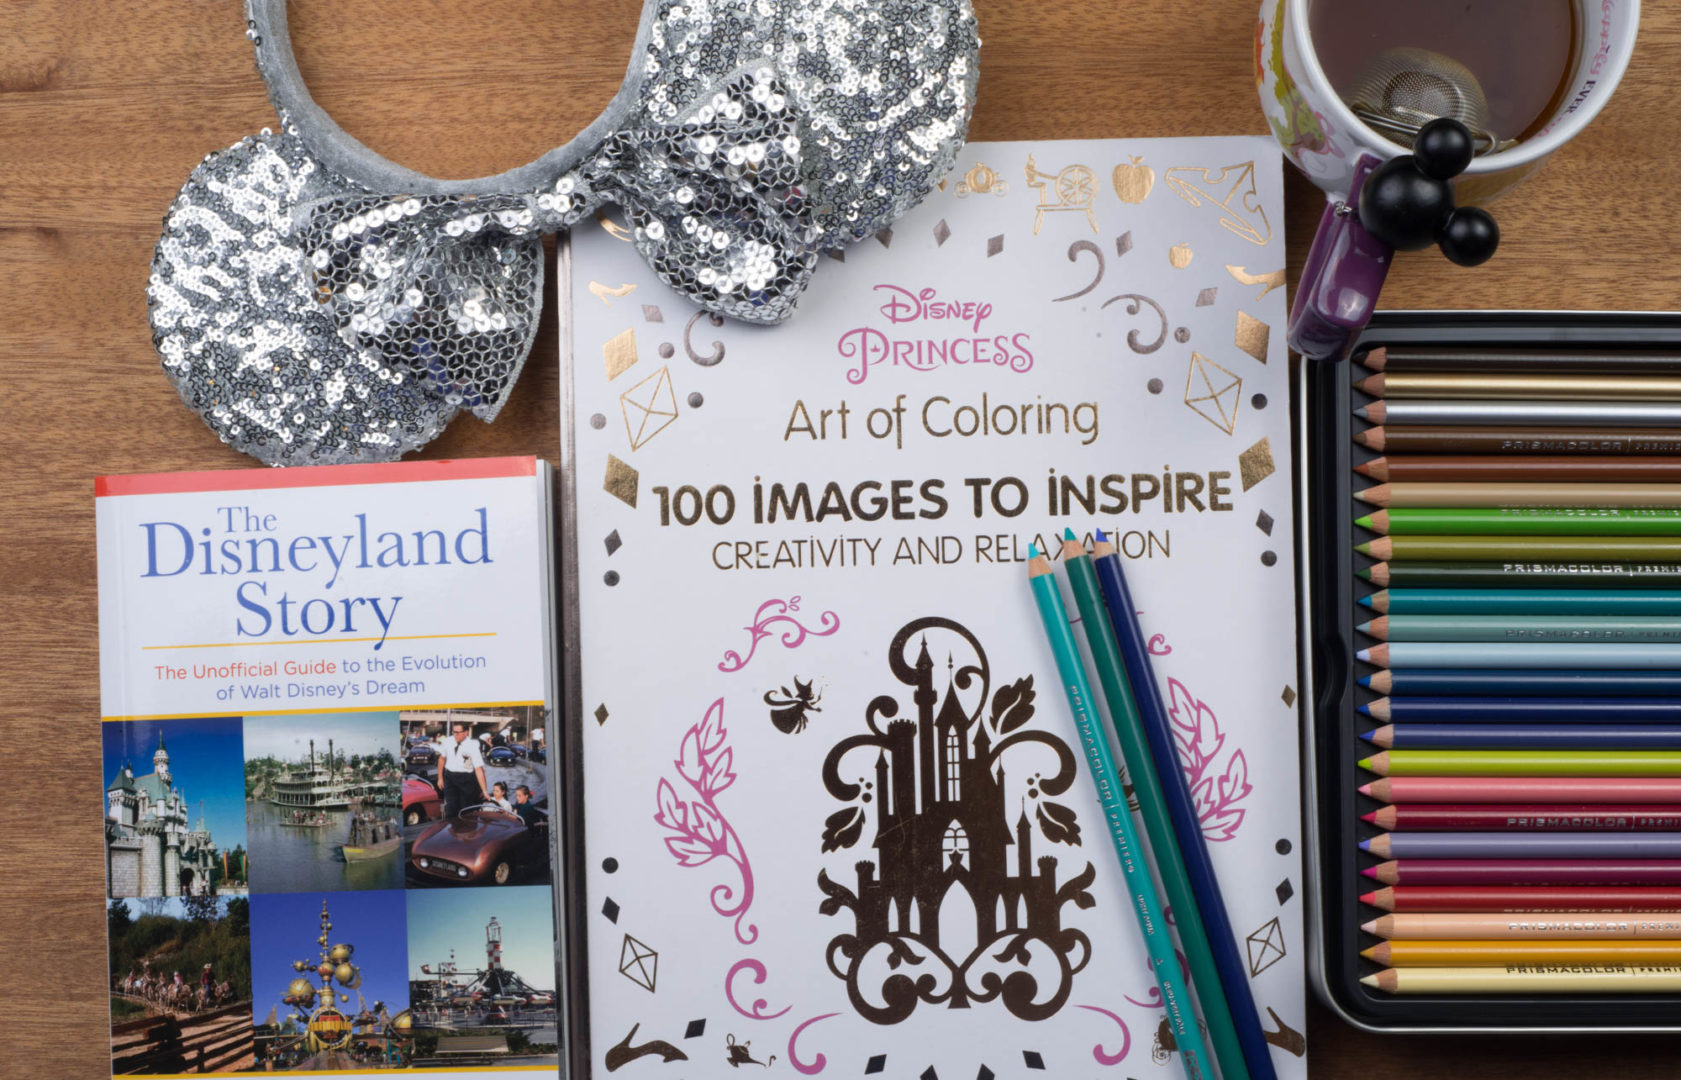 Disney Princess Art of Coloring Book and Colored Pencils with Sequin Mickey Ears and The Disneyland Story Book on a table